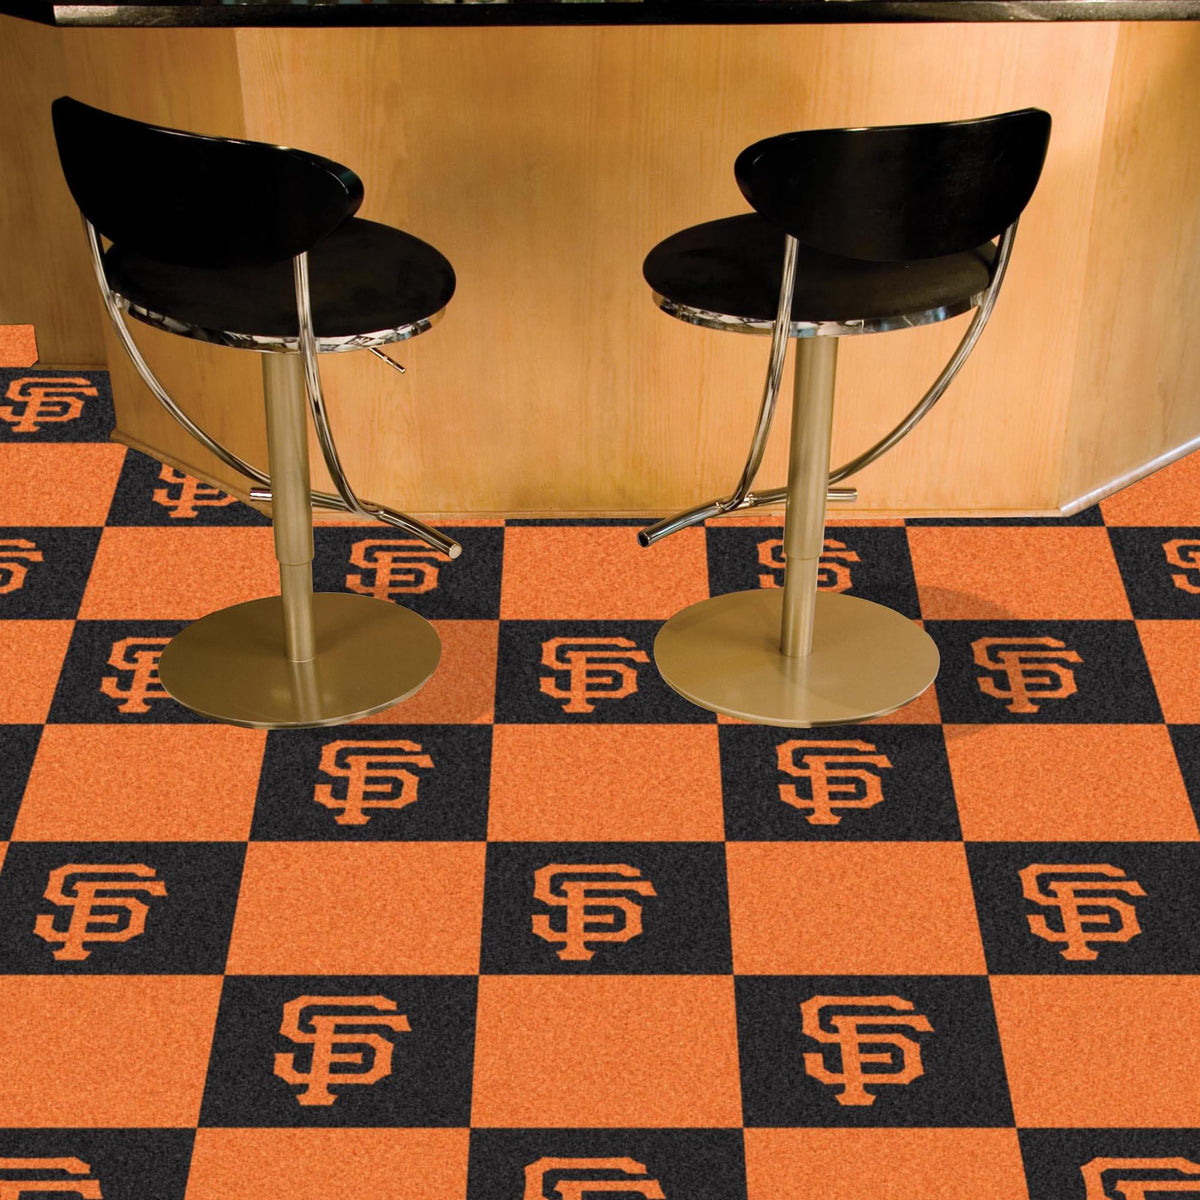 MLB - Team Carpet Tiles MLB Mats, Carpet Tile Flooring, Team Carpet Tiles, MLB, Home Fan Mats San Francisco Giants